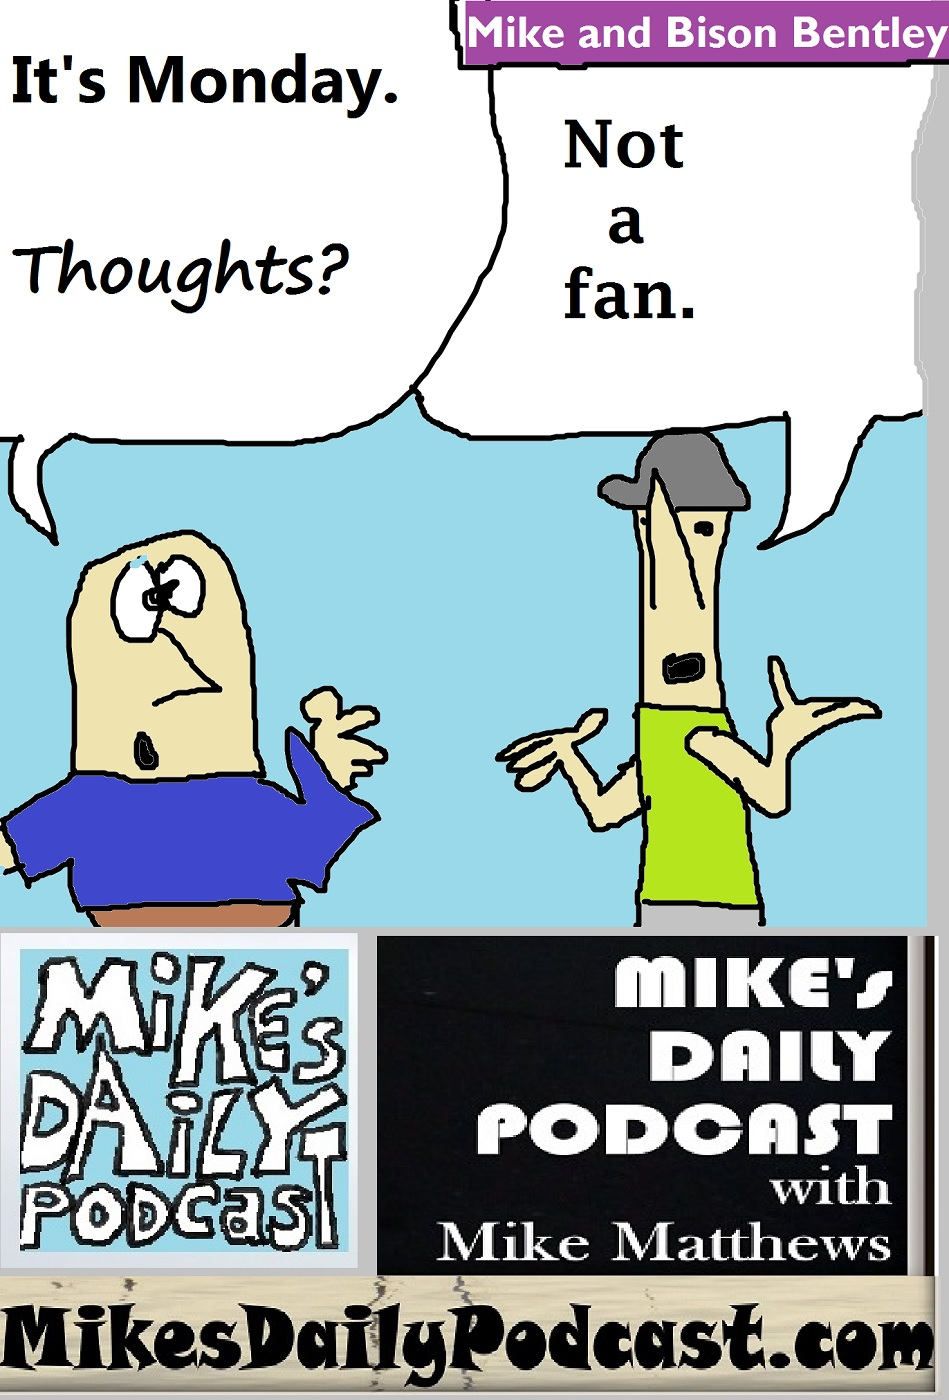 MIKEs DAILY PODCAST 1133 dang Mondays